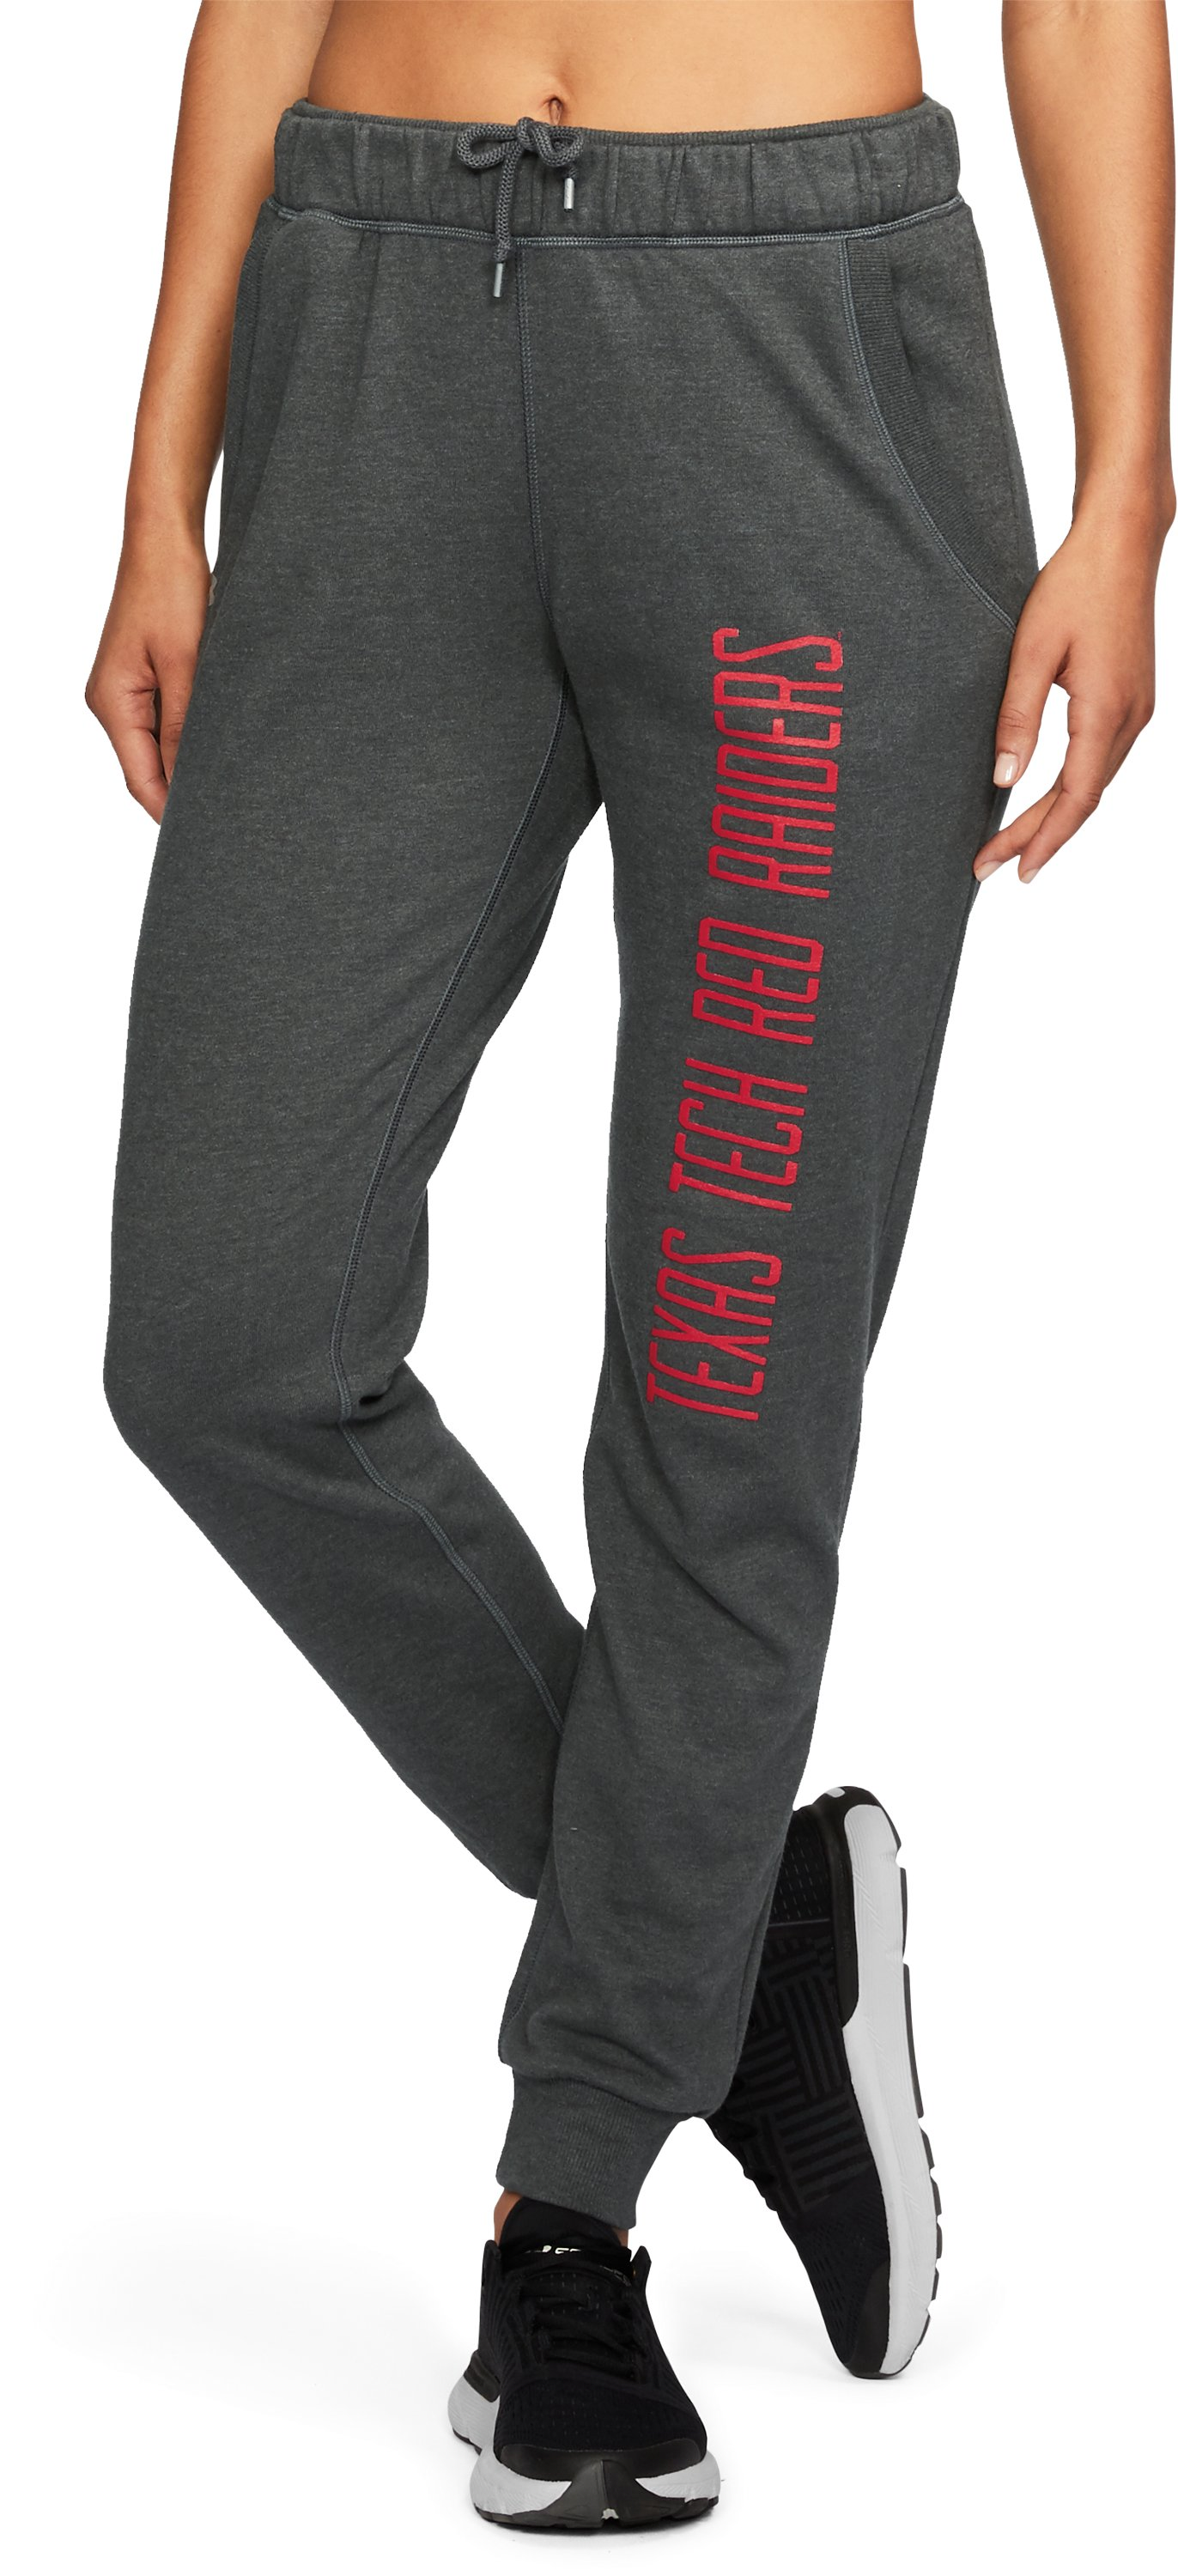 Women's Texas Tech UA Tri-Blend Pants, True Gray Heather